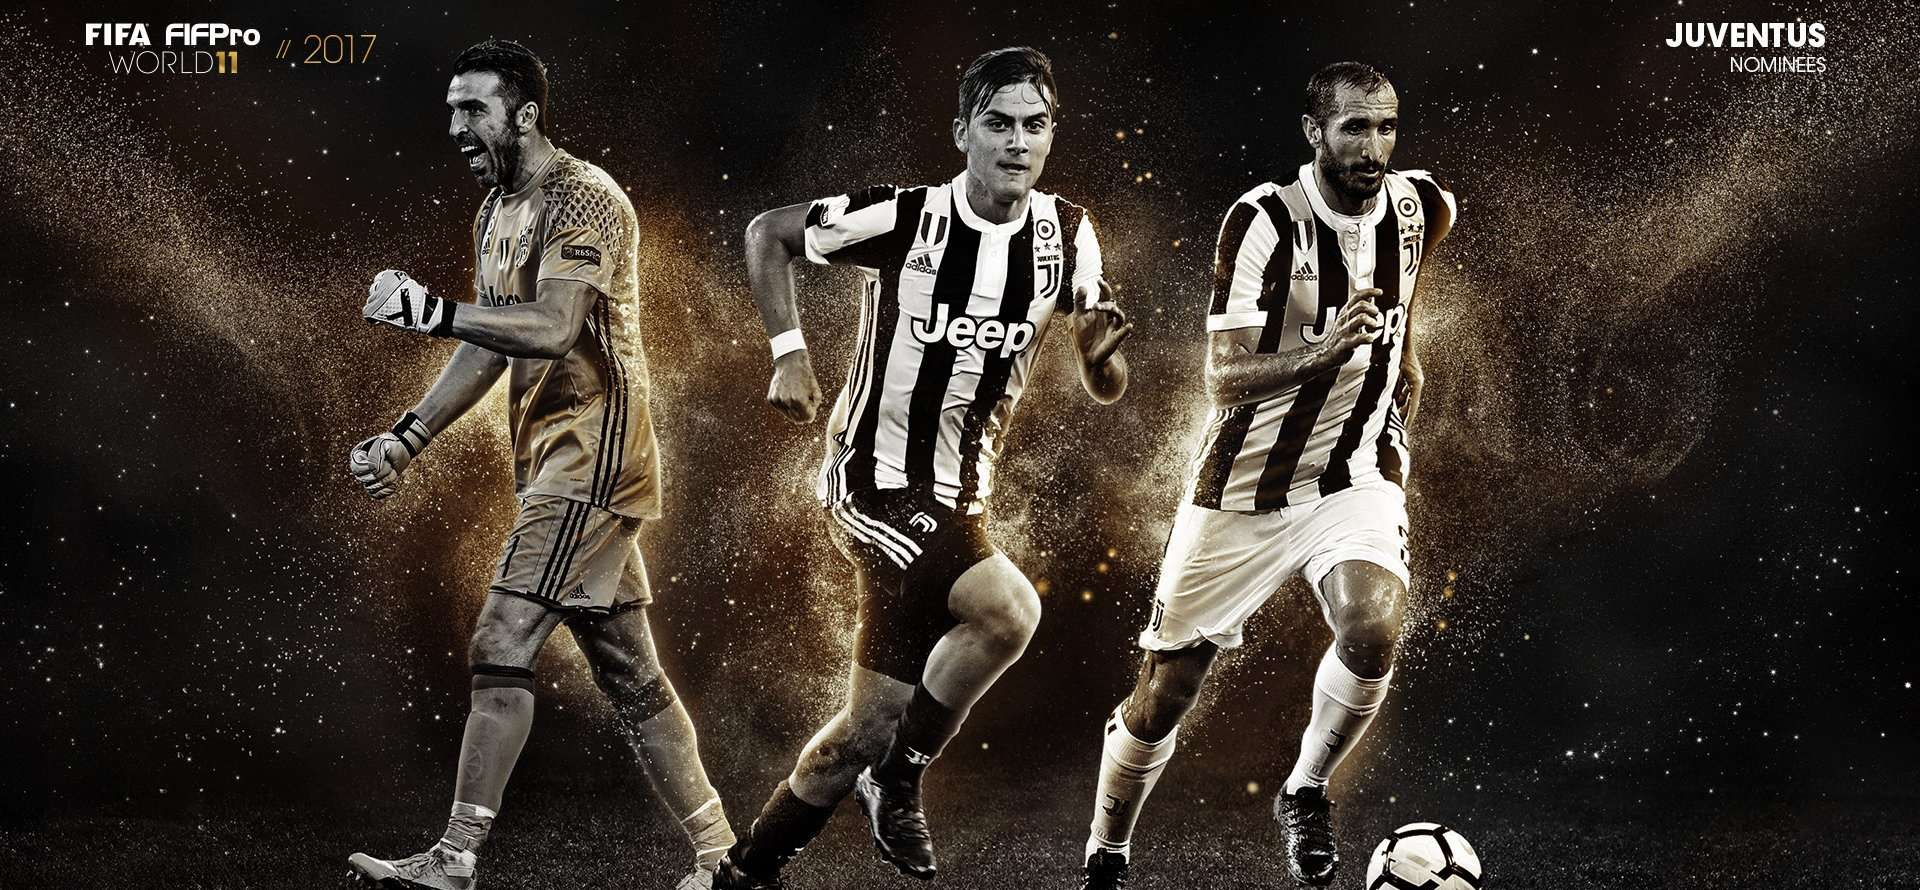 World 11 Fifpro, FIFA, AIC, top team, Bonucci, Chiellini, Buffon, Bonucci, Dybala